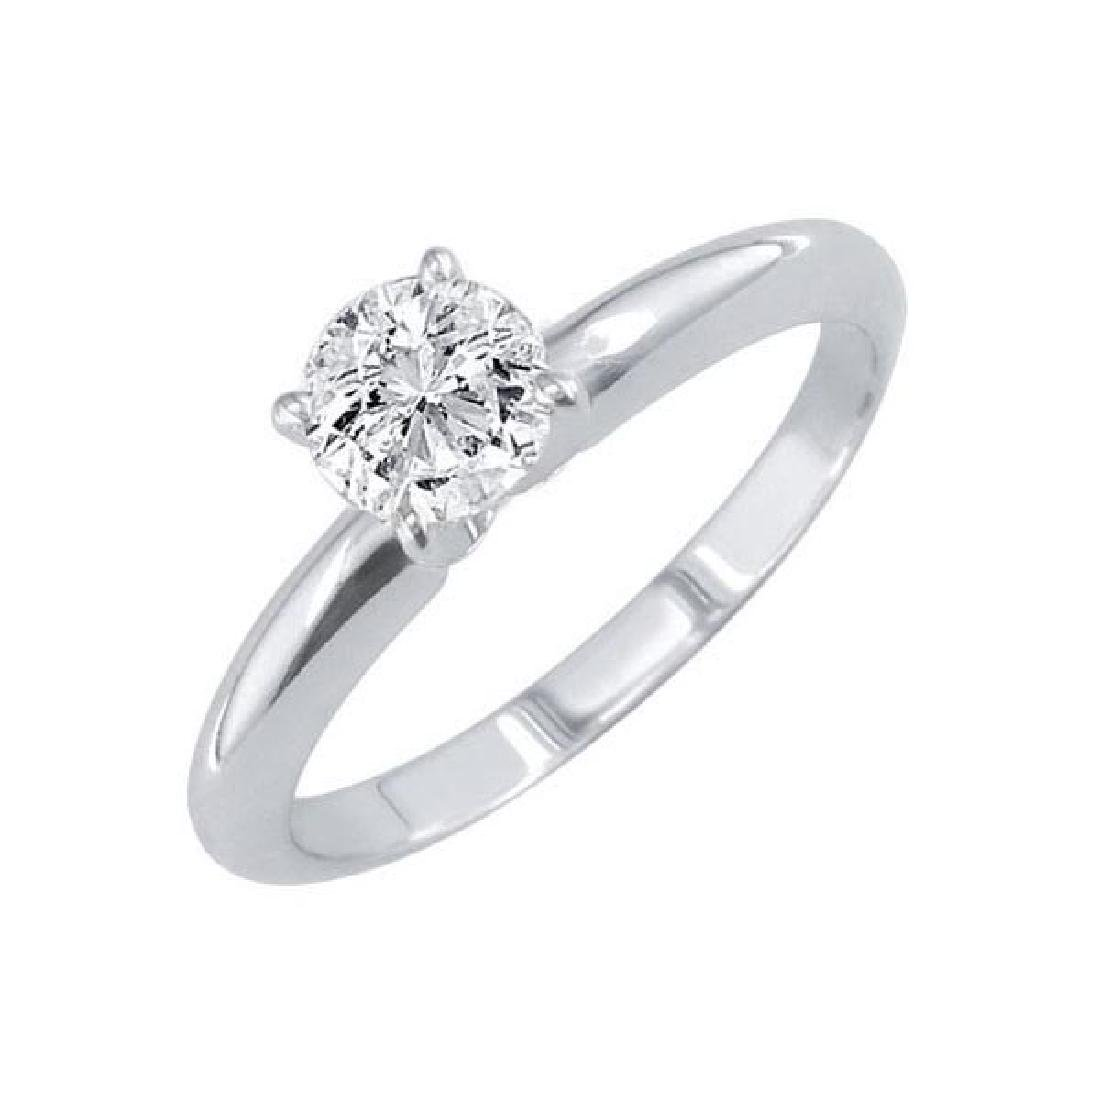 Certified 1.11 CTW Round Diamond Solitaire 14k Ring D/S